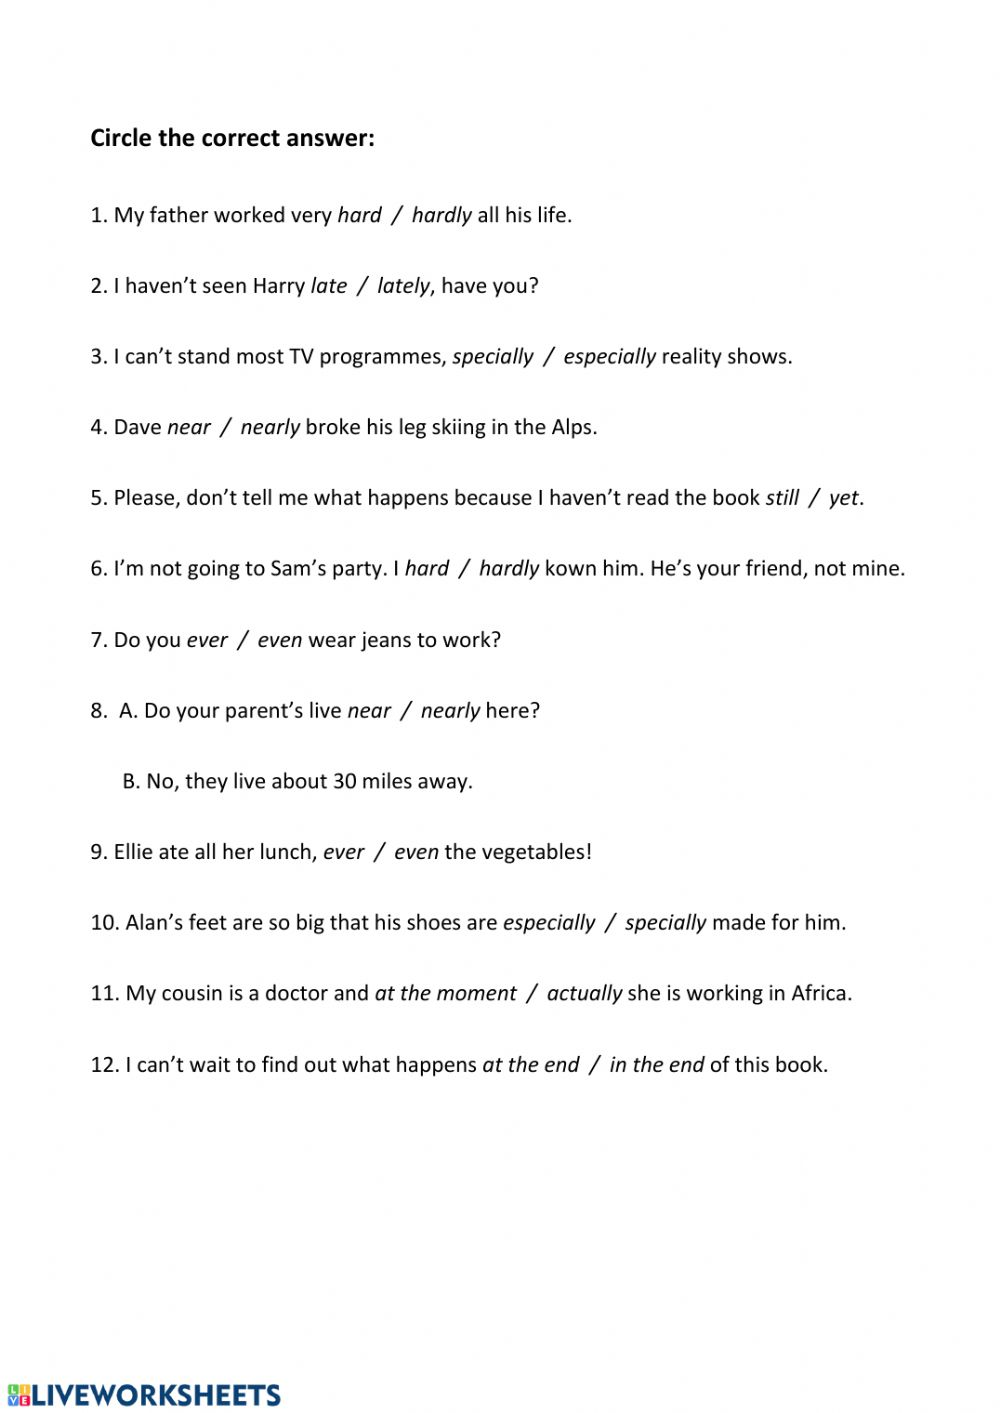 medium resolution of B2.2 Adverbs and adverbial phrases worksheet